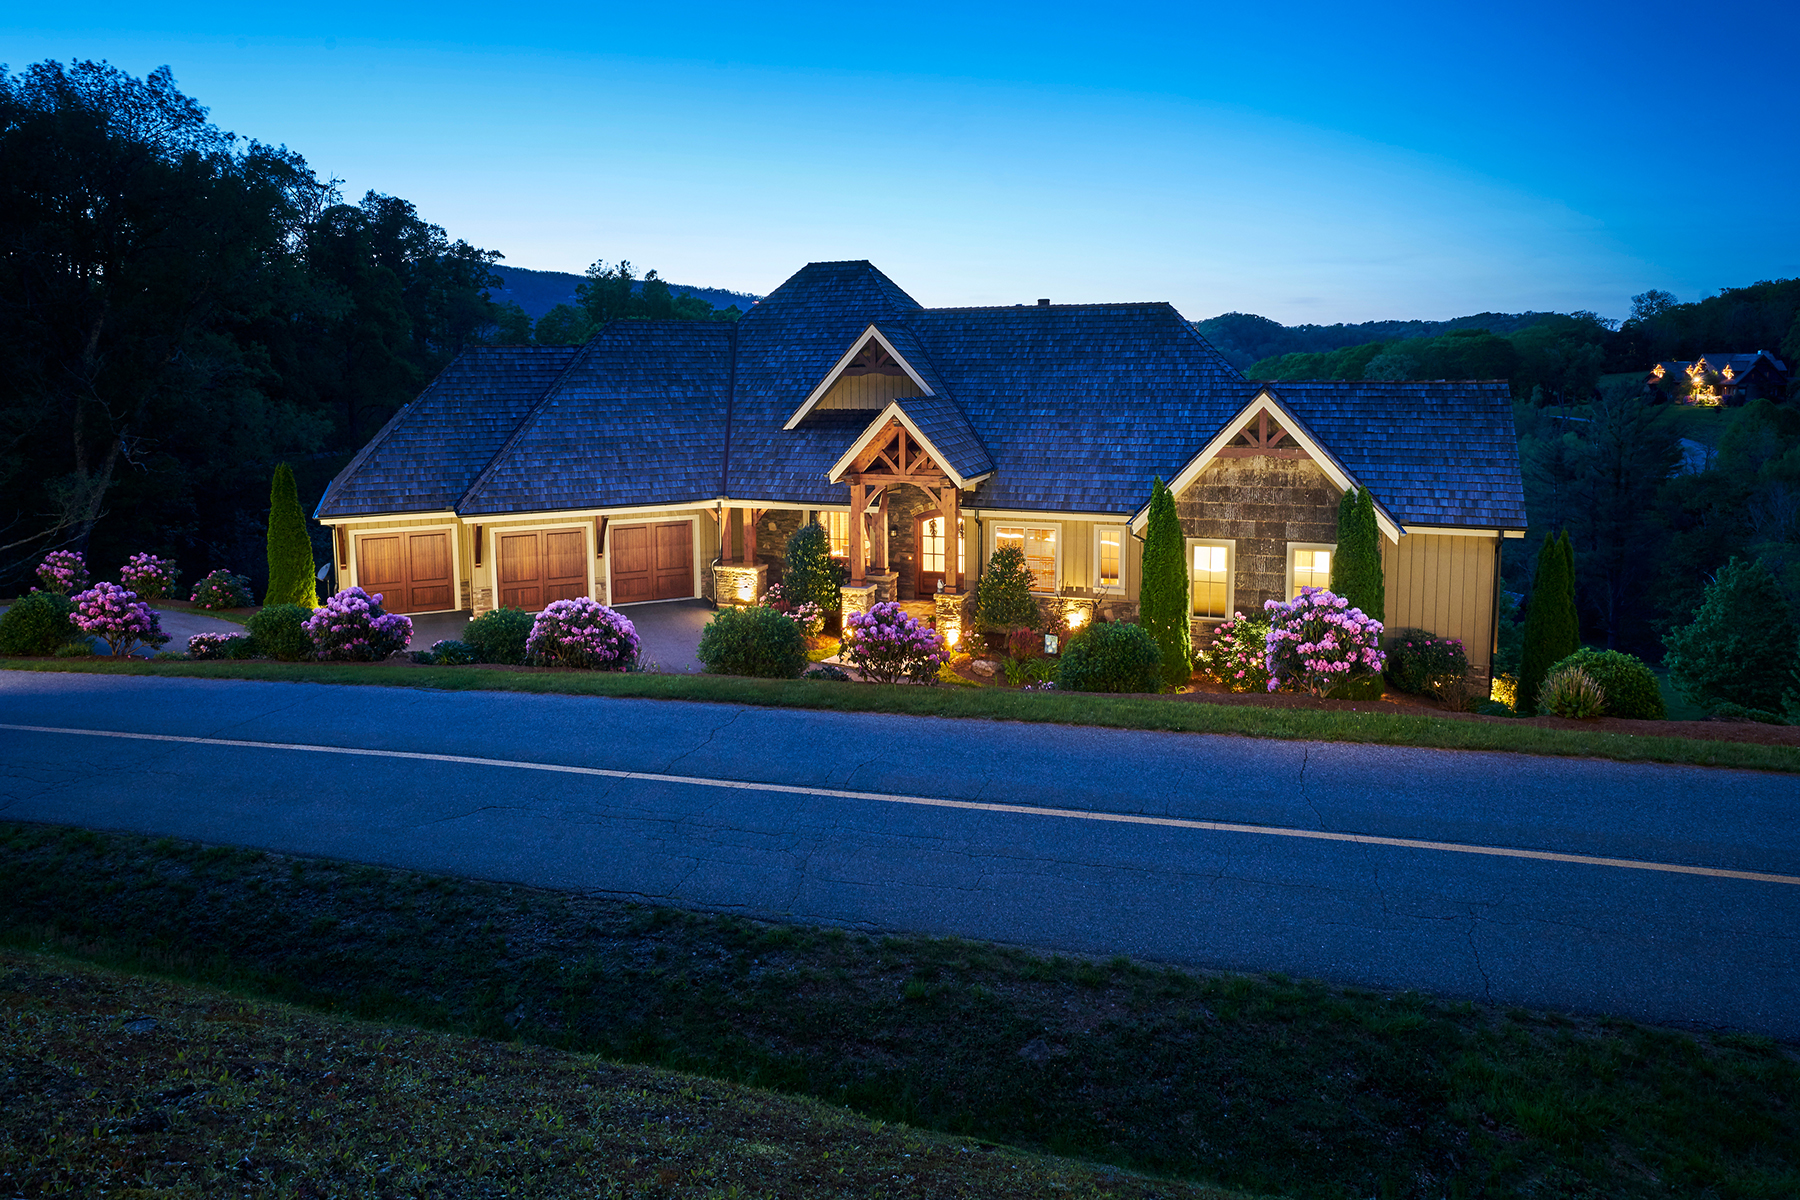 Single Family Homes for Active at FIRETHORN - BLOWING ROCK 276 Thunderhill Trl Blowing Rock, North Carolina 28605 United States